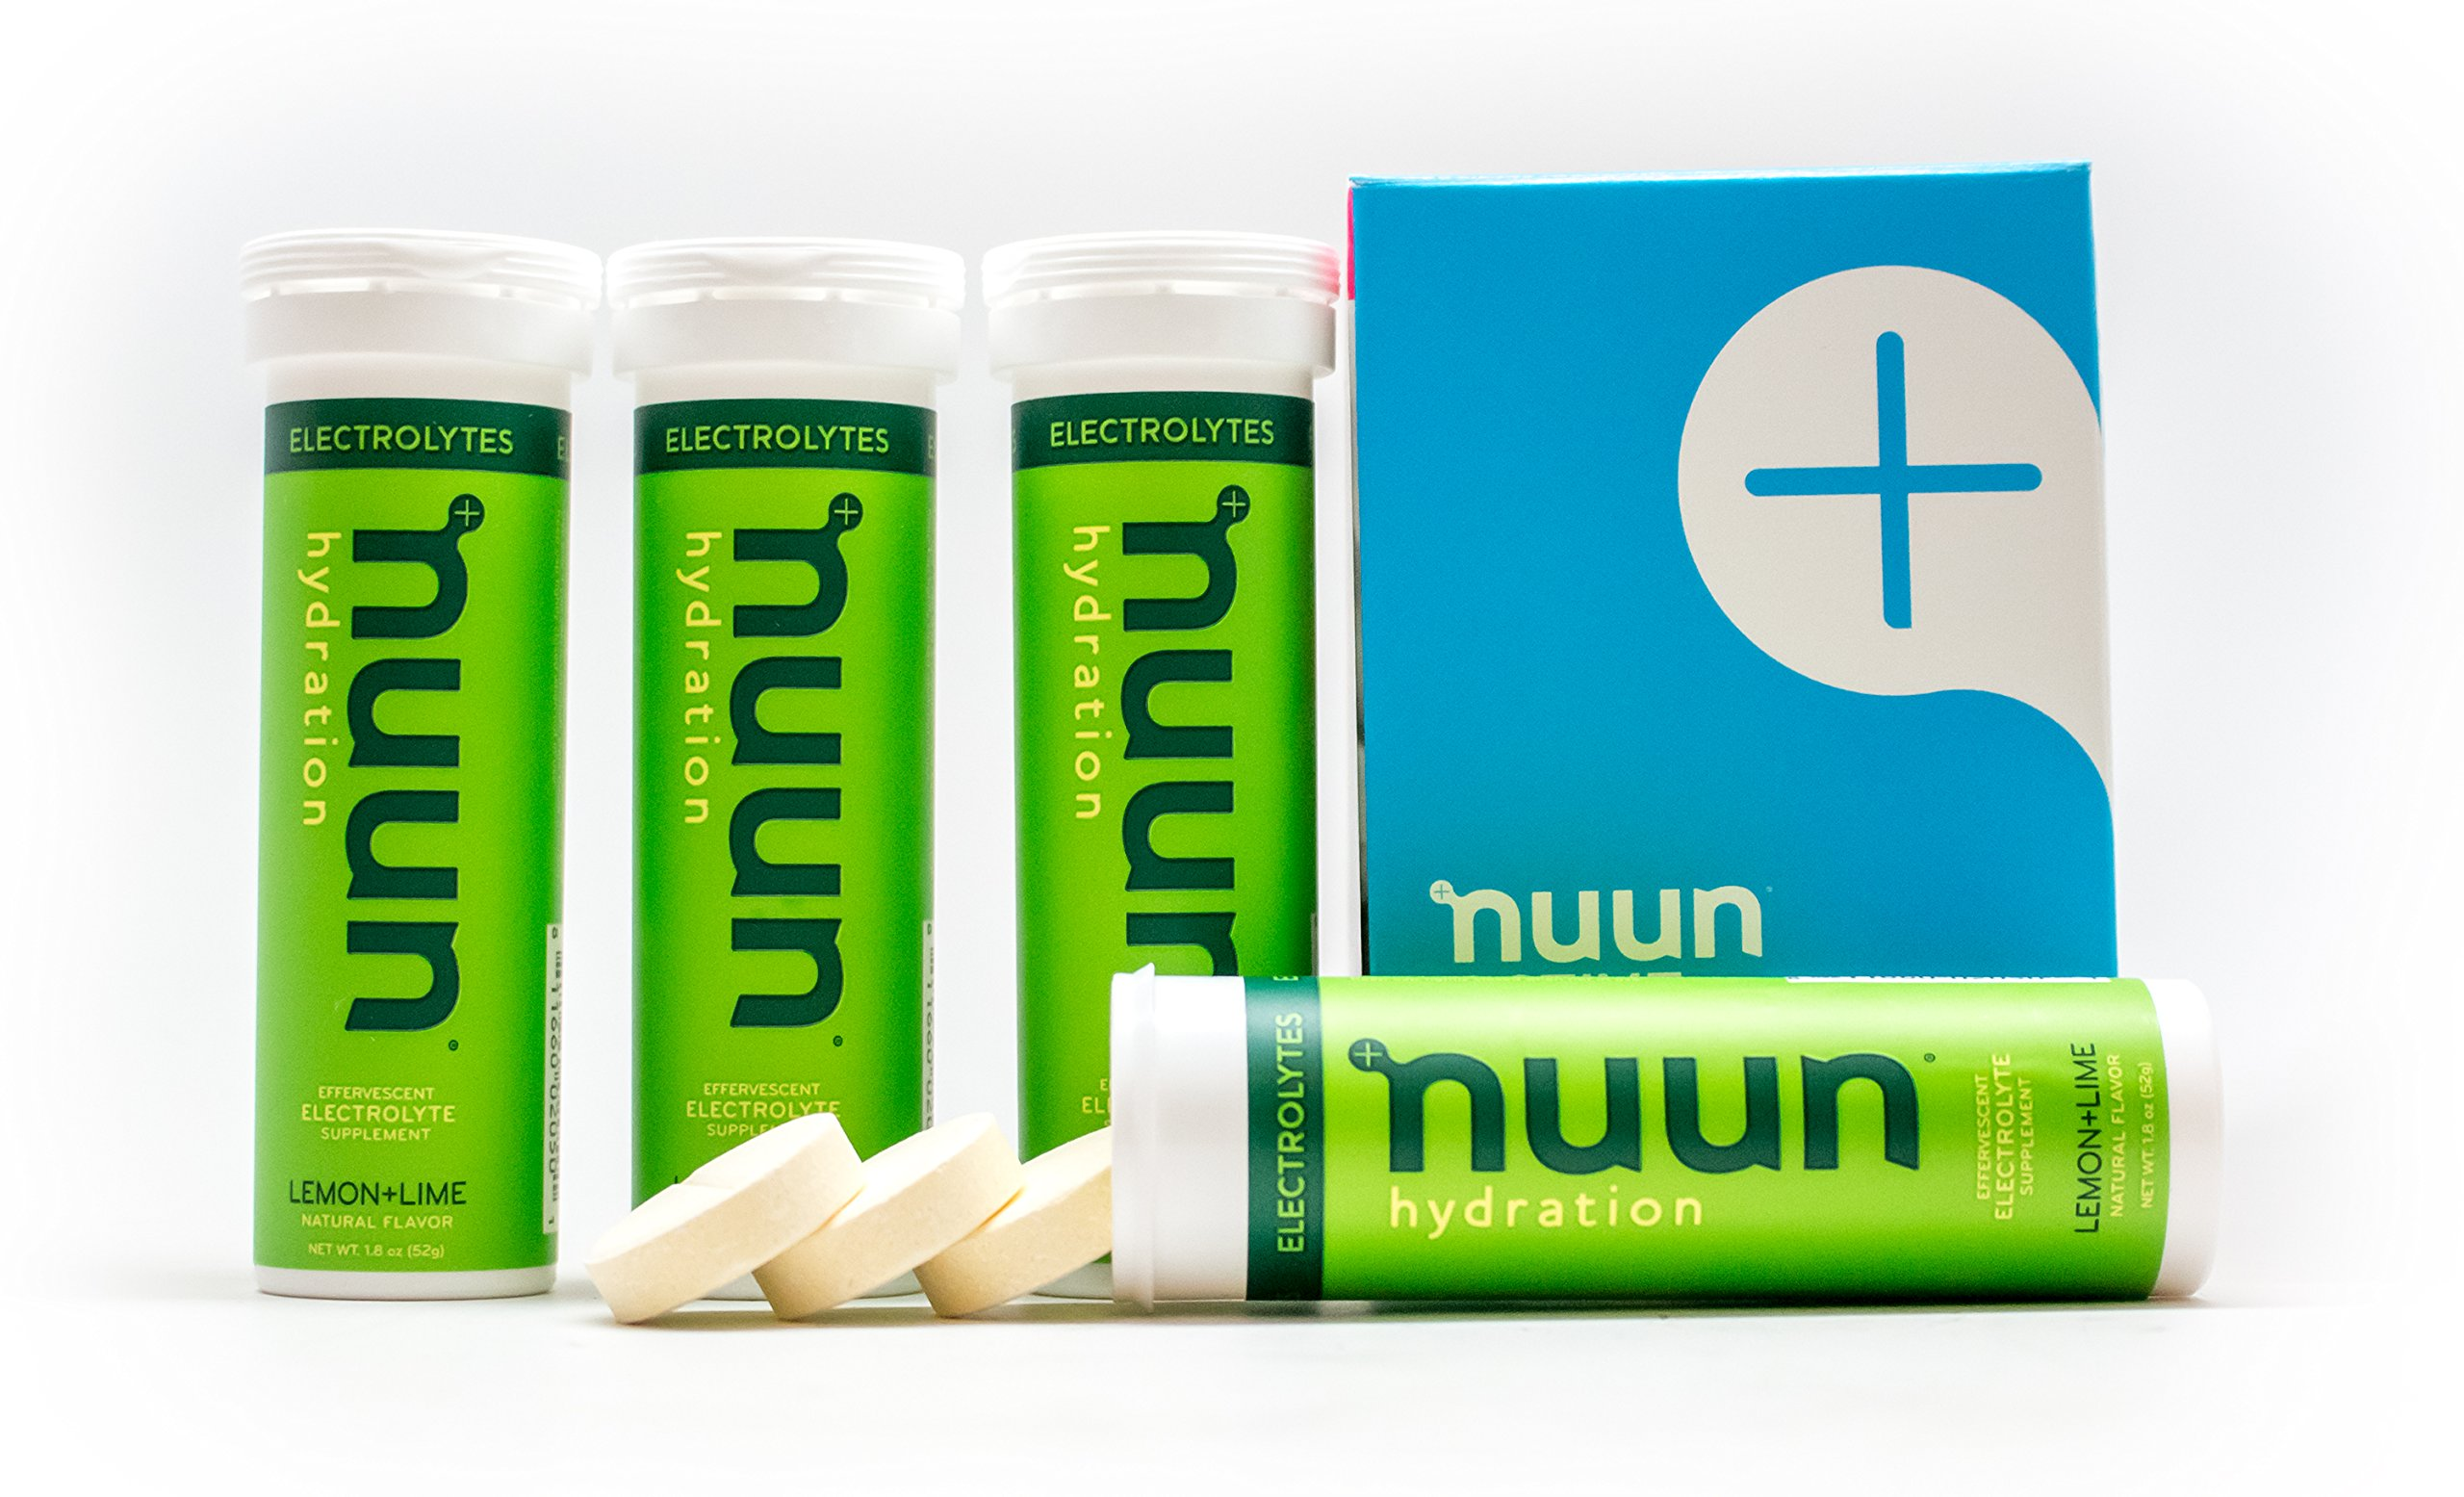 Nuun Hydration: Electrolyte Drink Tablets, Lemon Lime, Box of 4 Tubes (40  servings), to Recover Essential Electrolytes Lost Through Sweat